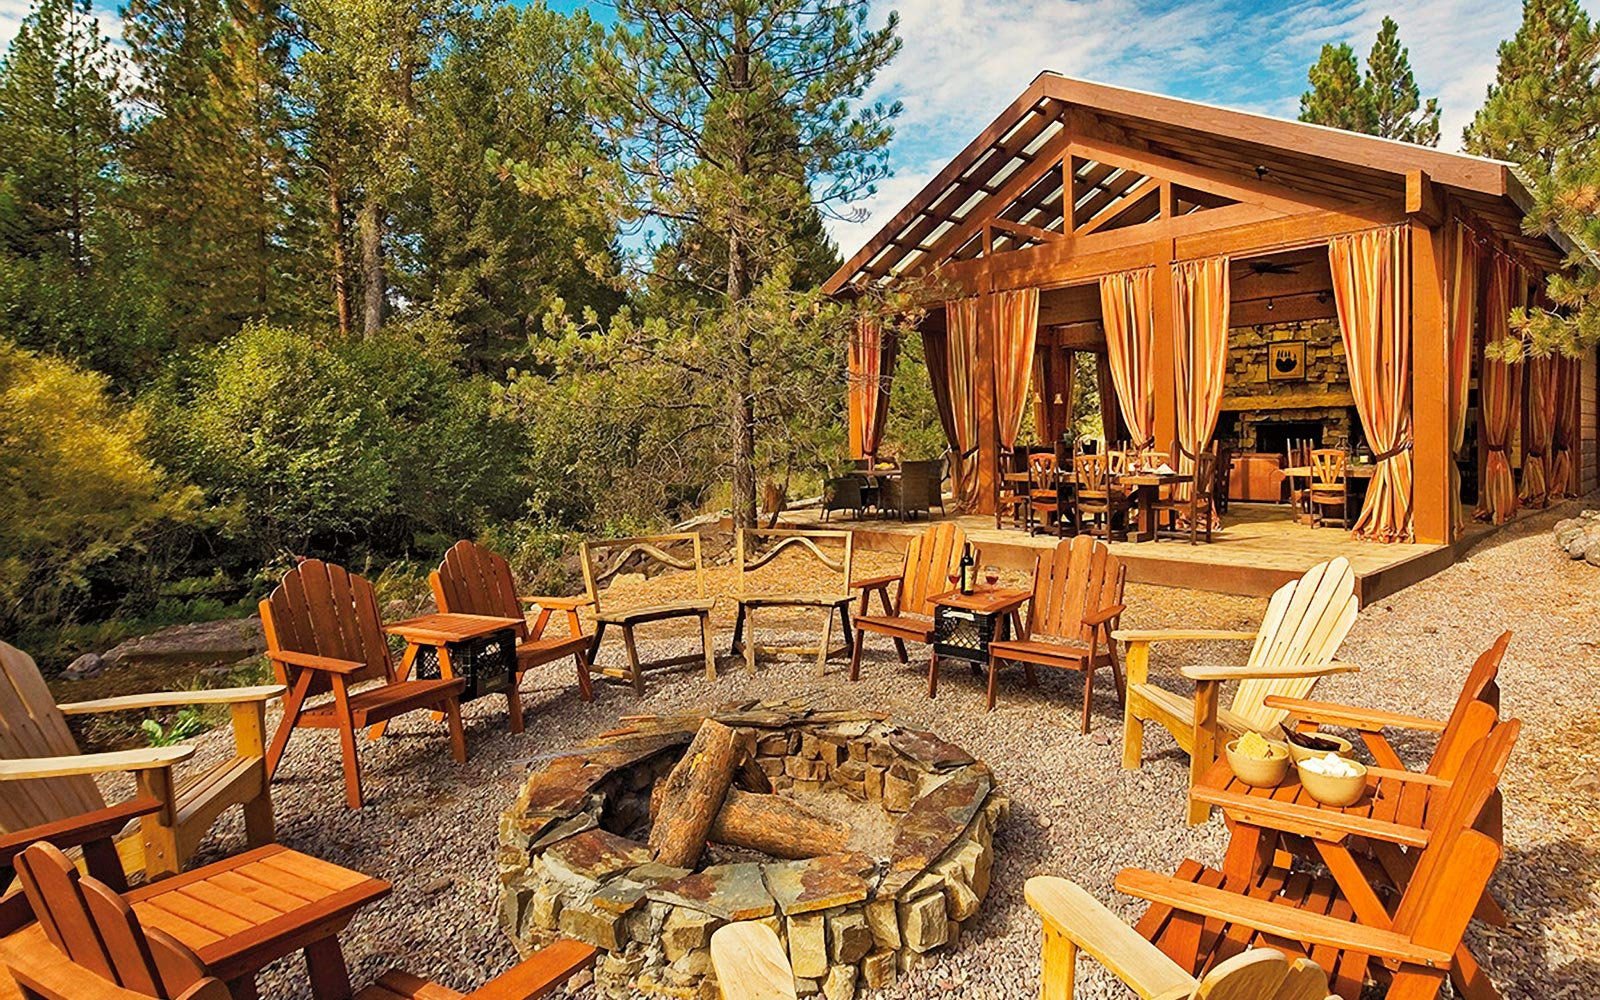 Cabin accommodations at Paws Up